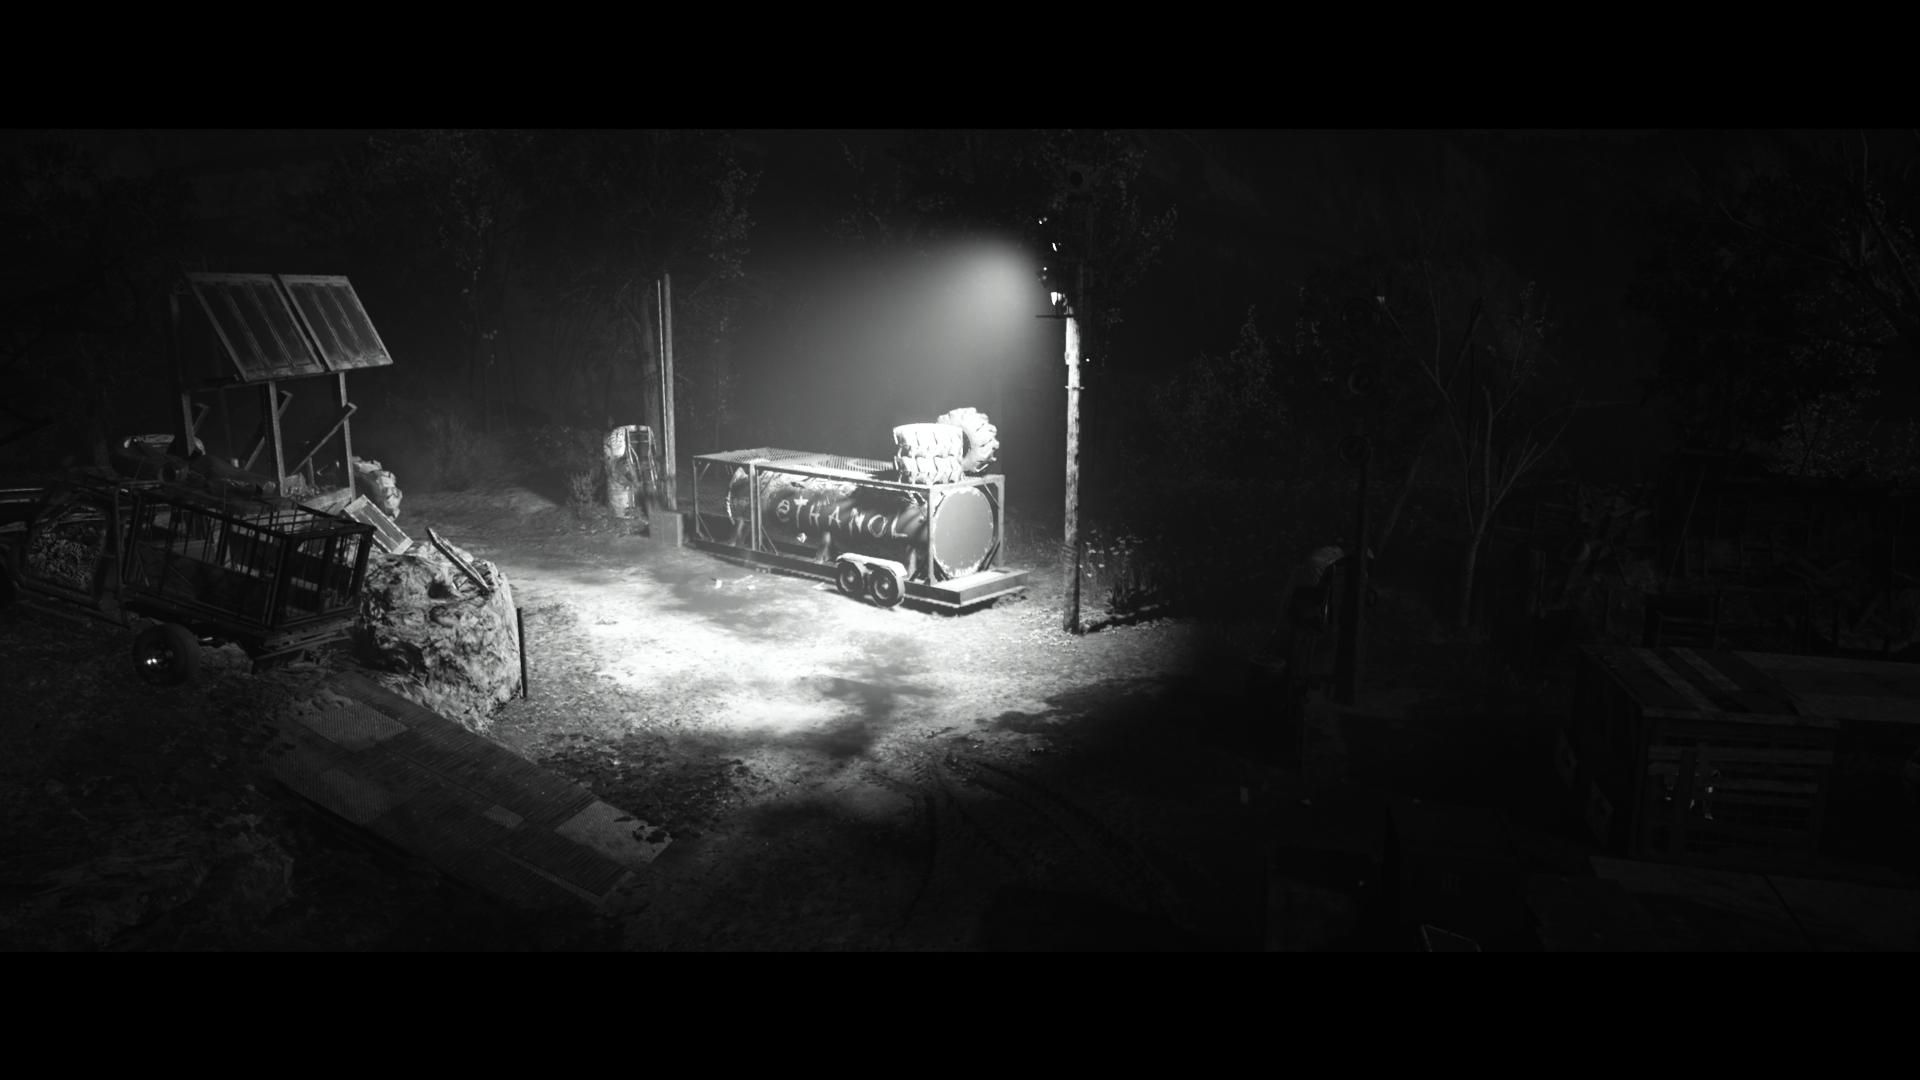 A black and white mysteriously lit shot of a power generator at night.